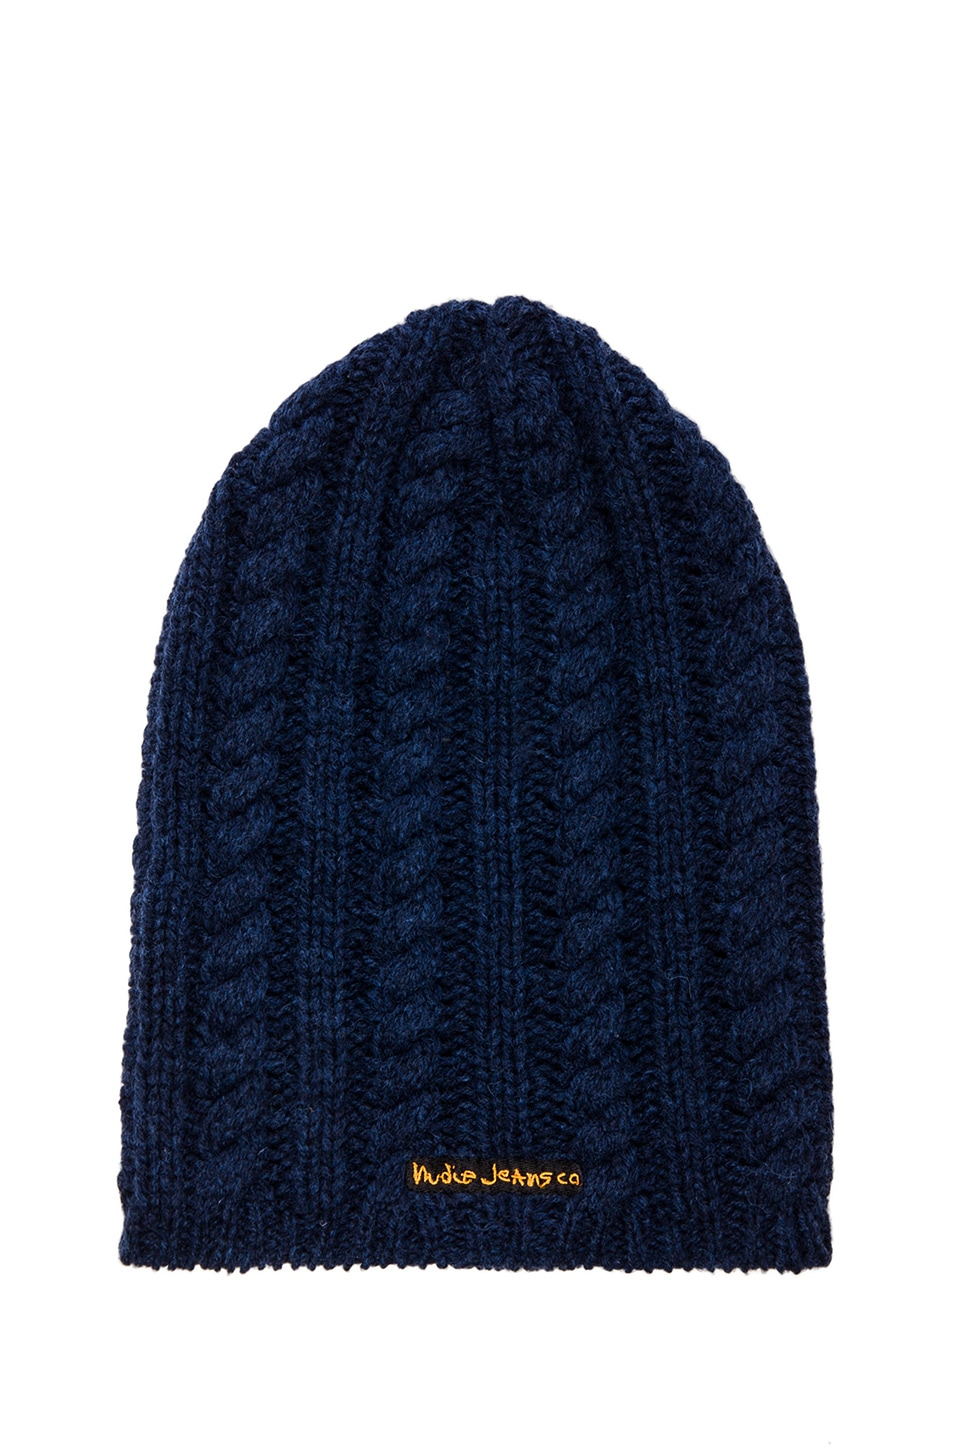 Nudie Jeans Mikaelsson Beanie in Blue